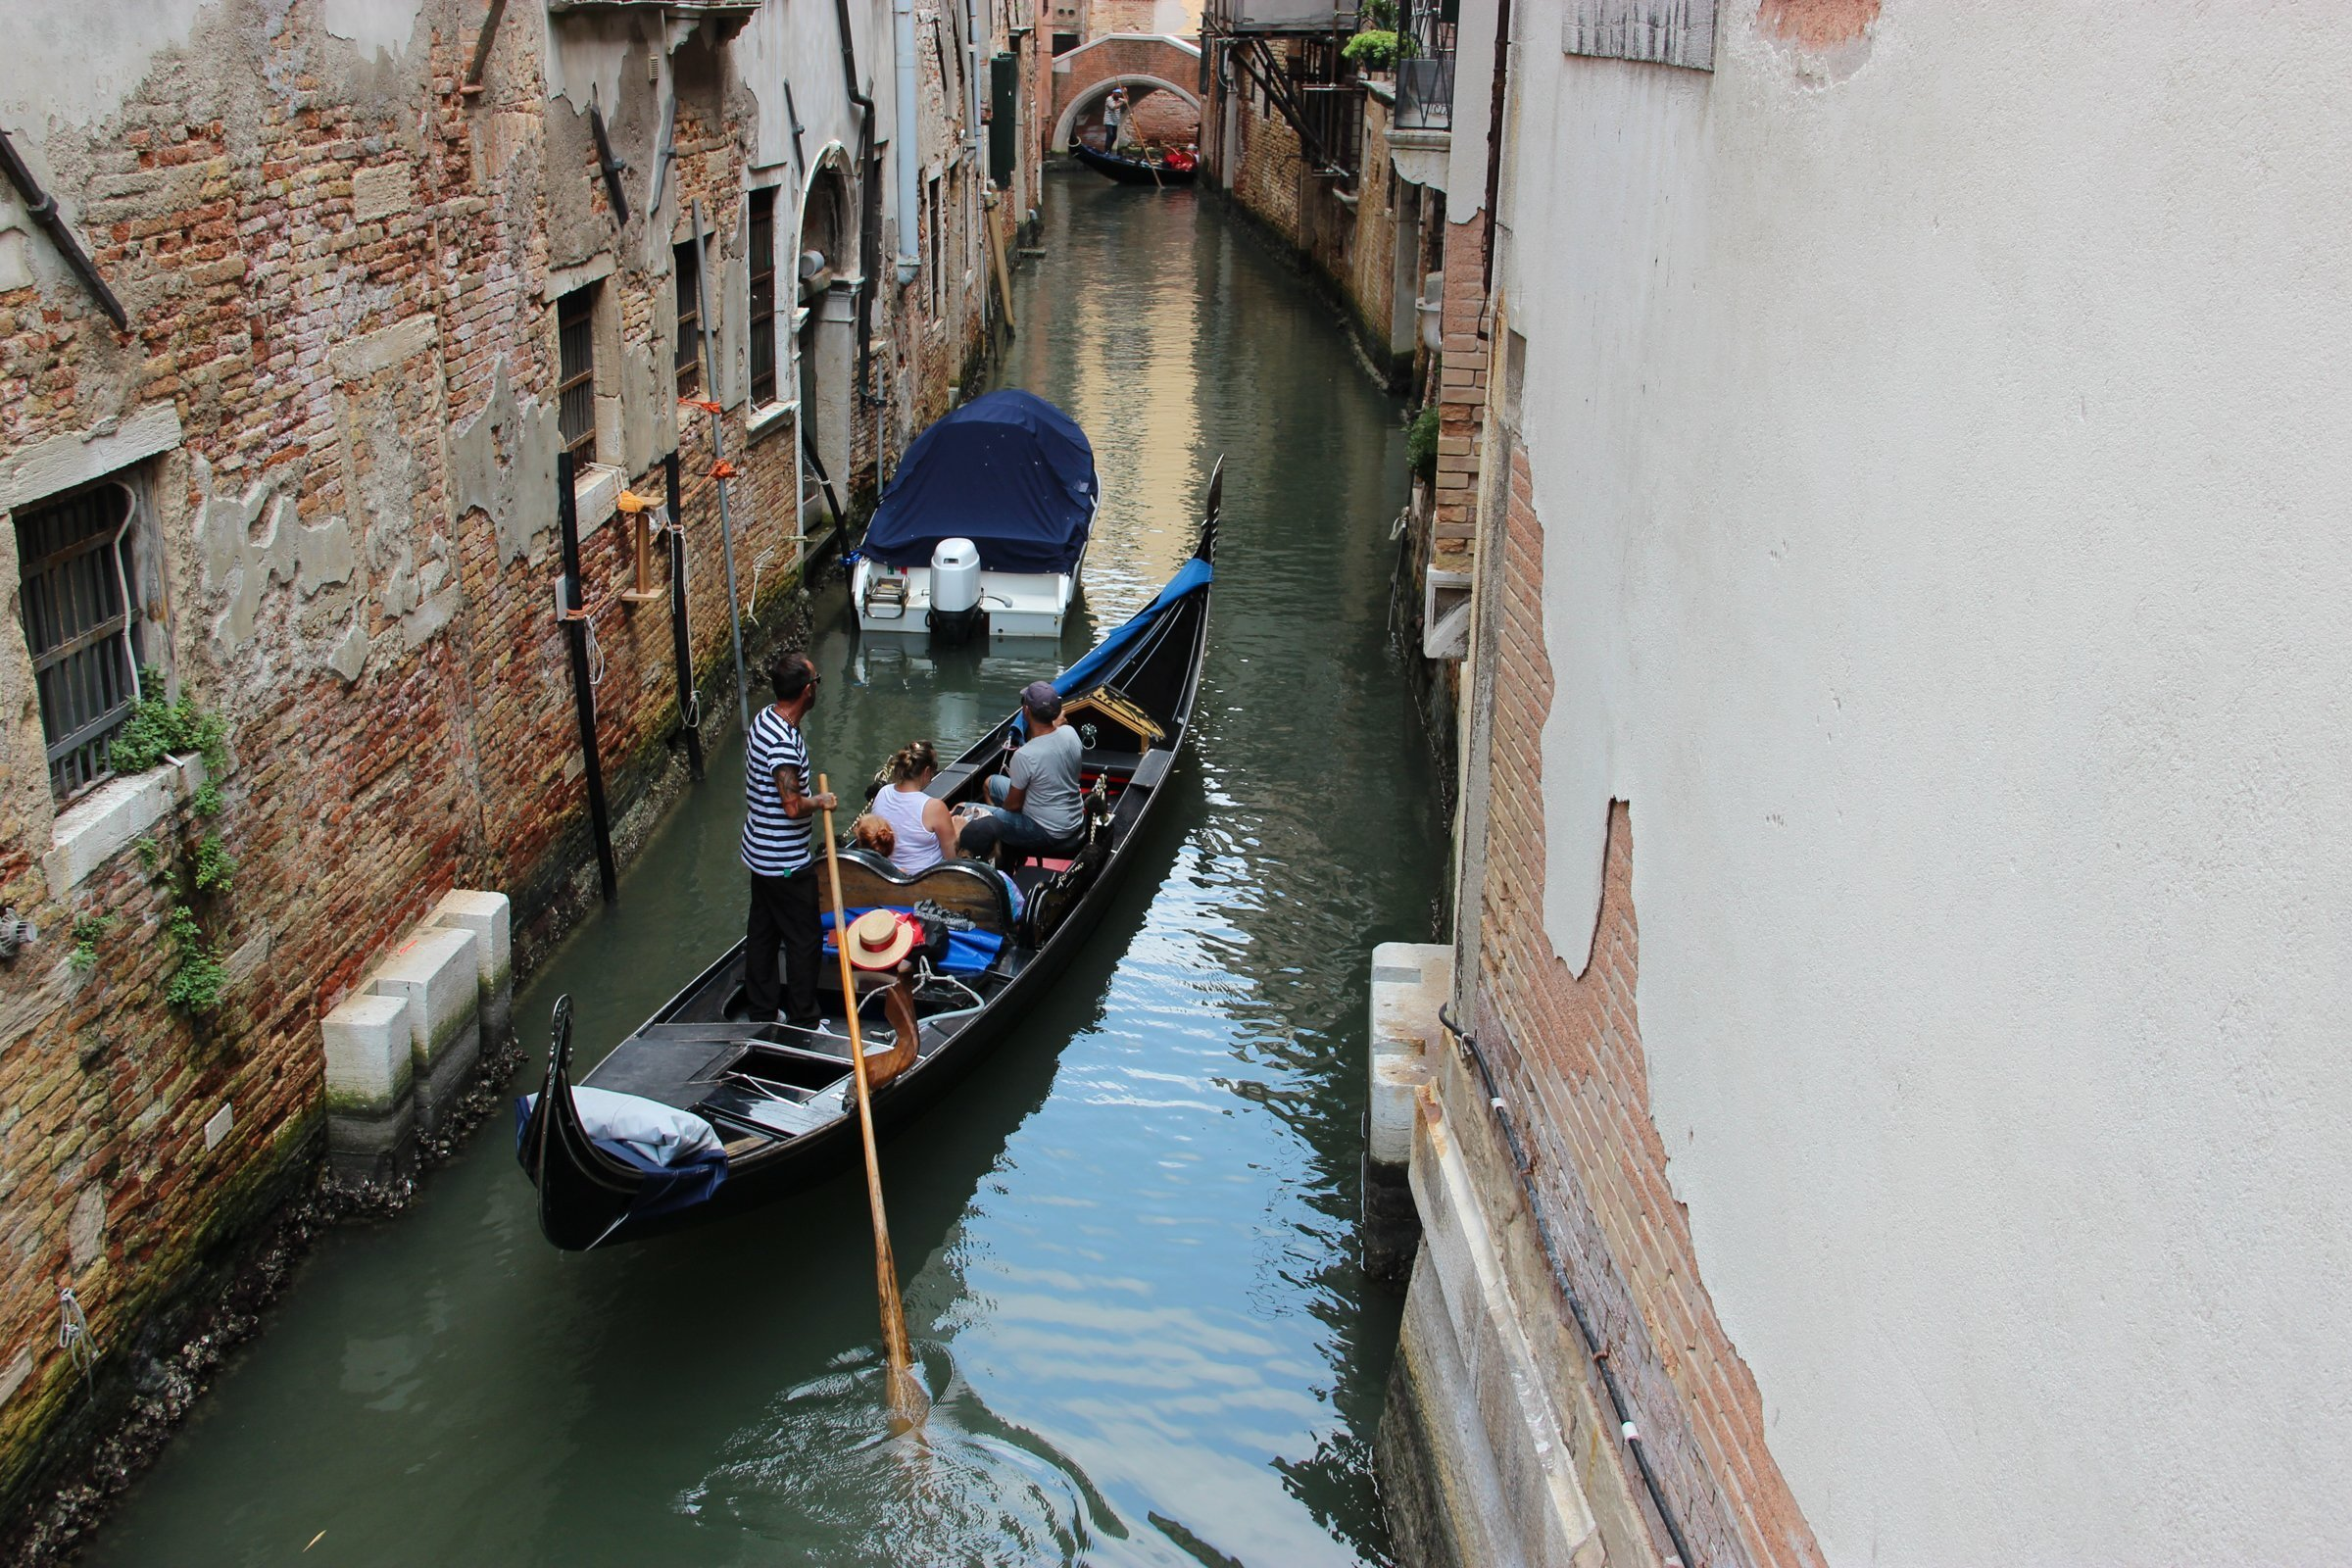 Tourists In Gondola In Venice Canal